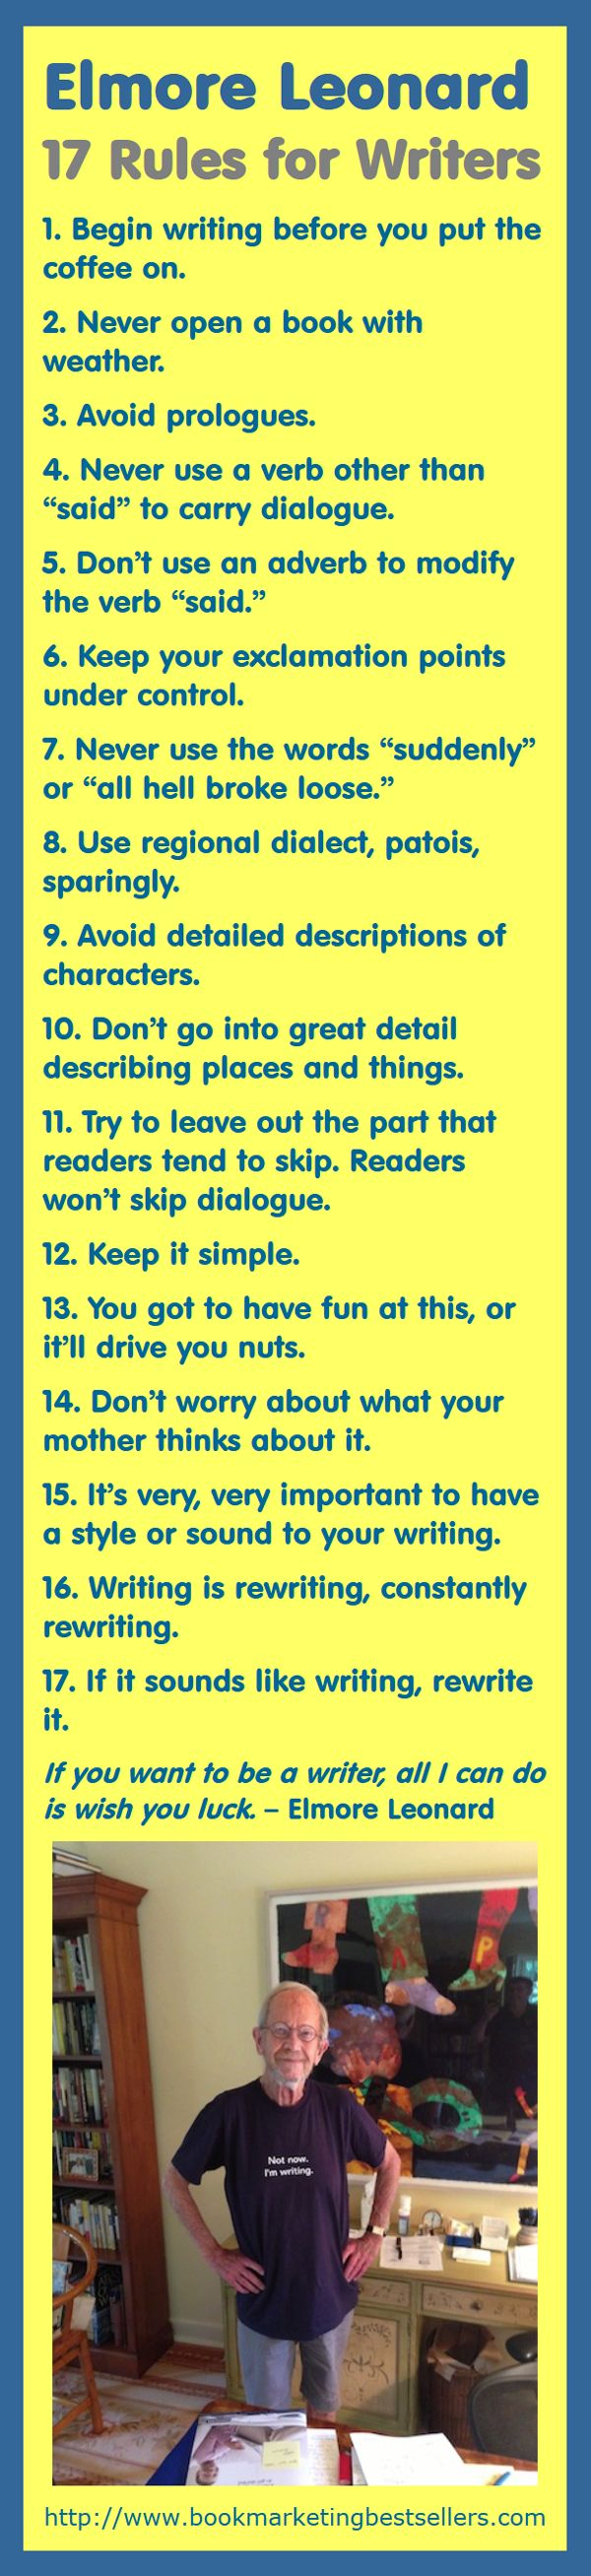 "In honor of a great writer who recently passed away, here are 17 of his rules for writers. 1. Begin writing before you put the coffee on. 2. Never open a book with weather. 3. Avoid prologues. 4. Never use a verb other than ""said"" to carry dialogue.... #writers #writing #ELeonard"